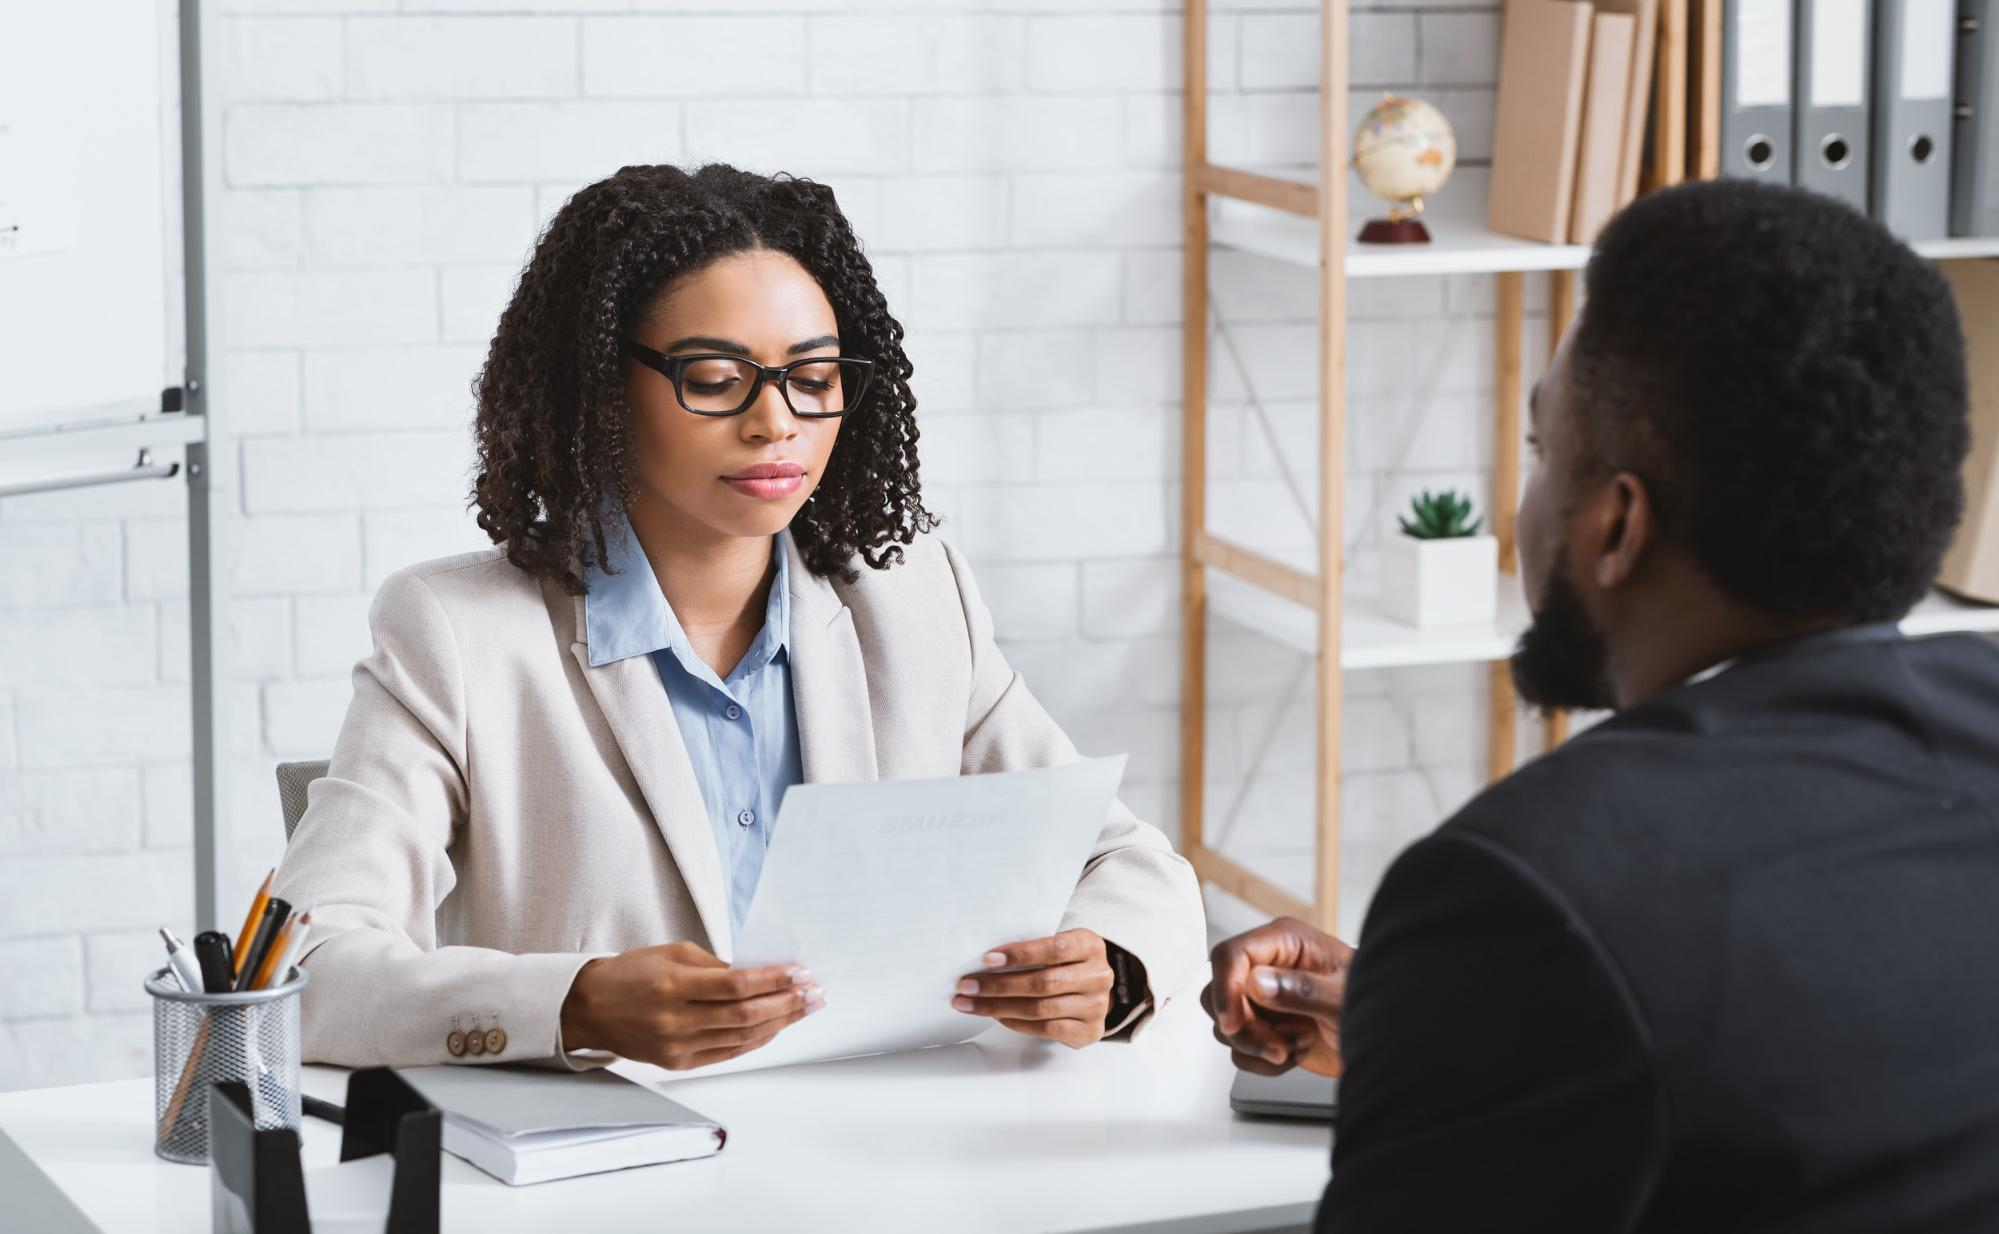 internship interview questions: Woman reading a man's resume during an interview